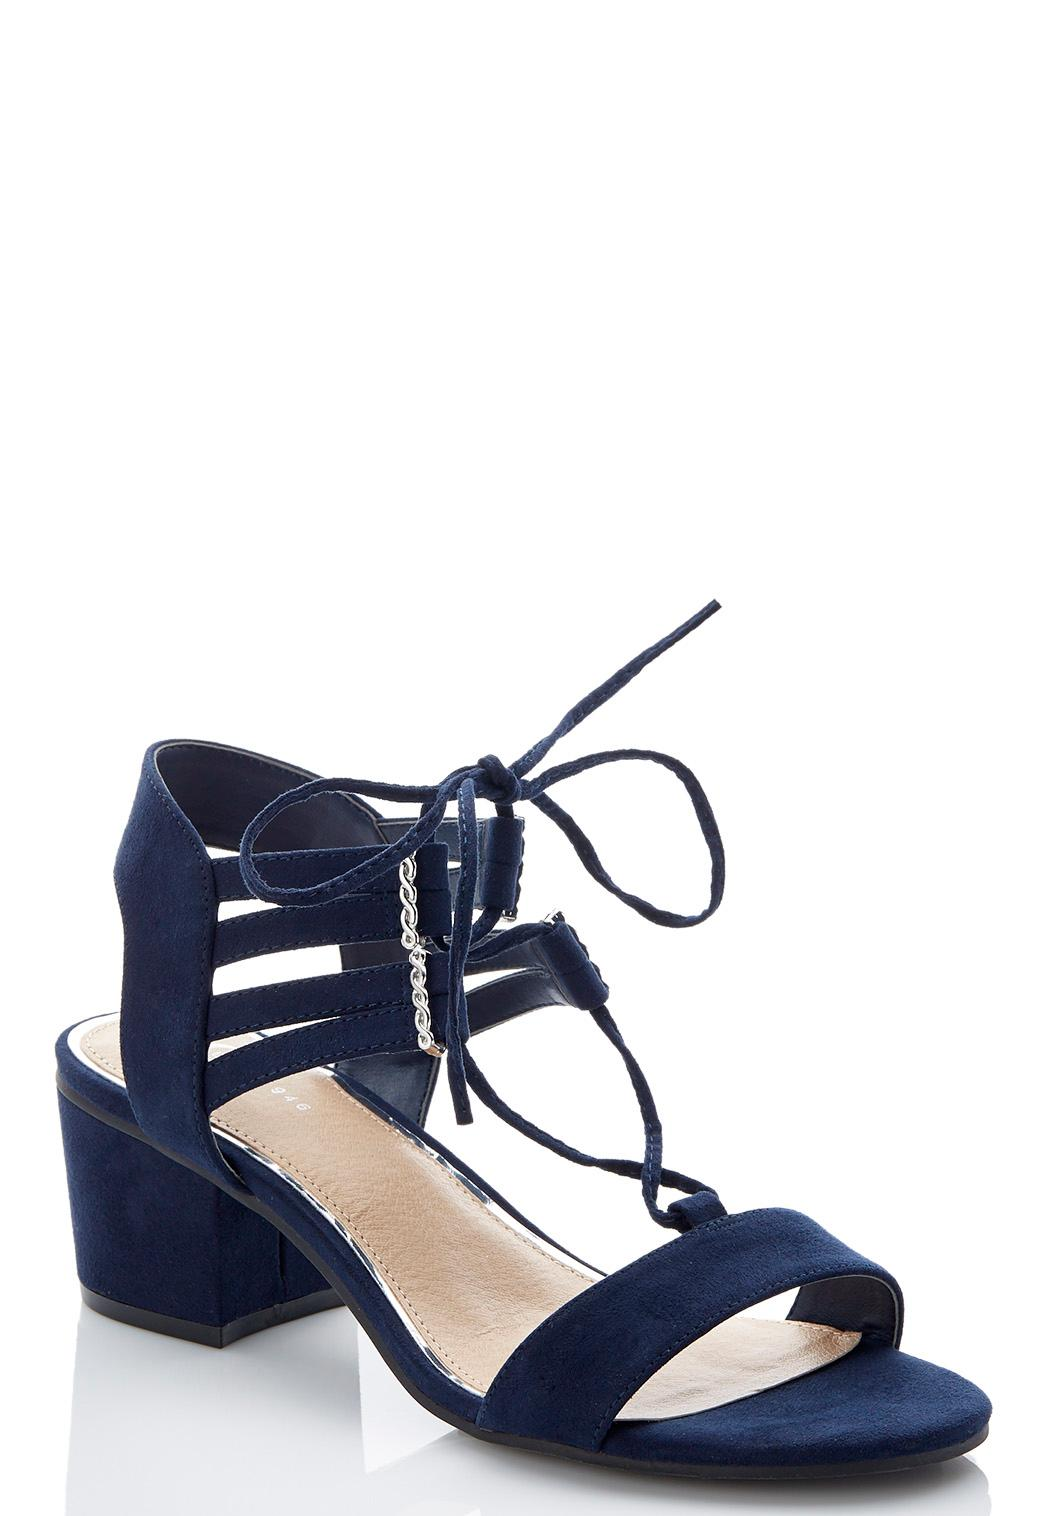 Lace Up Block Heel Sandals Heels Cato Fashions - What is commercial invoice shoe stores online